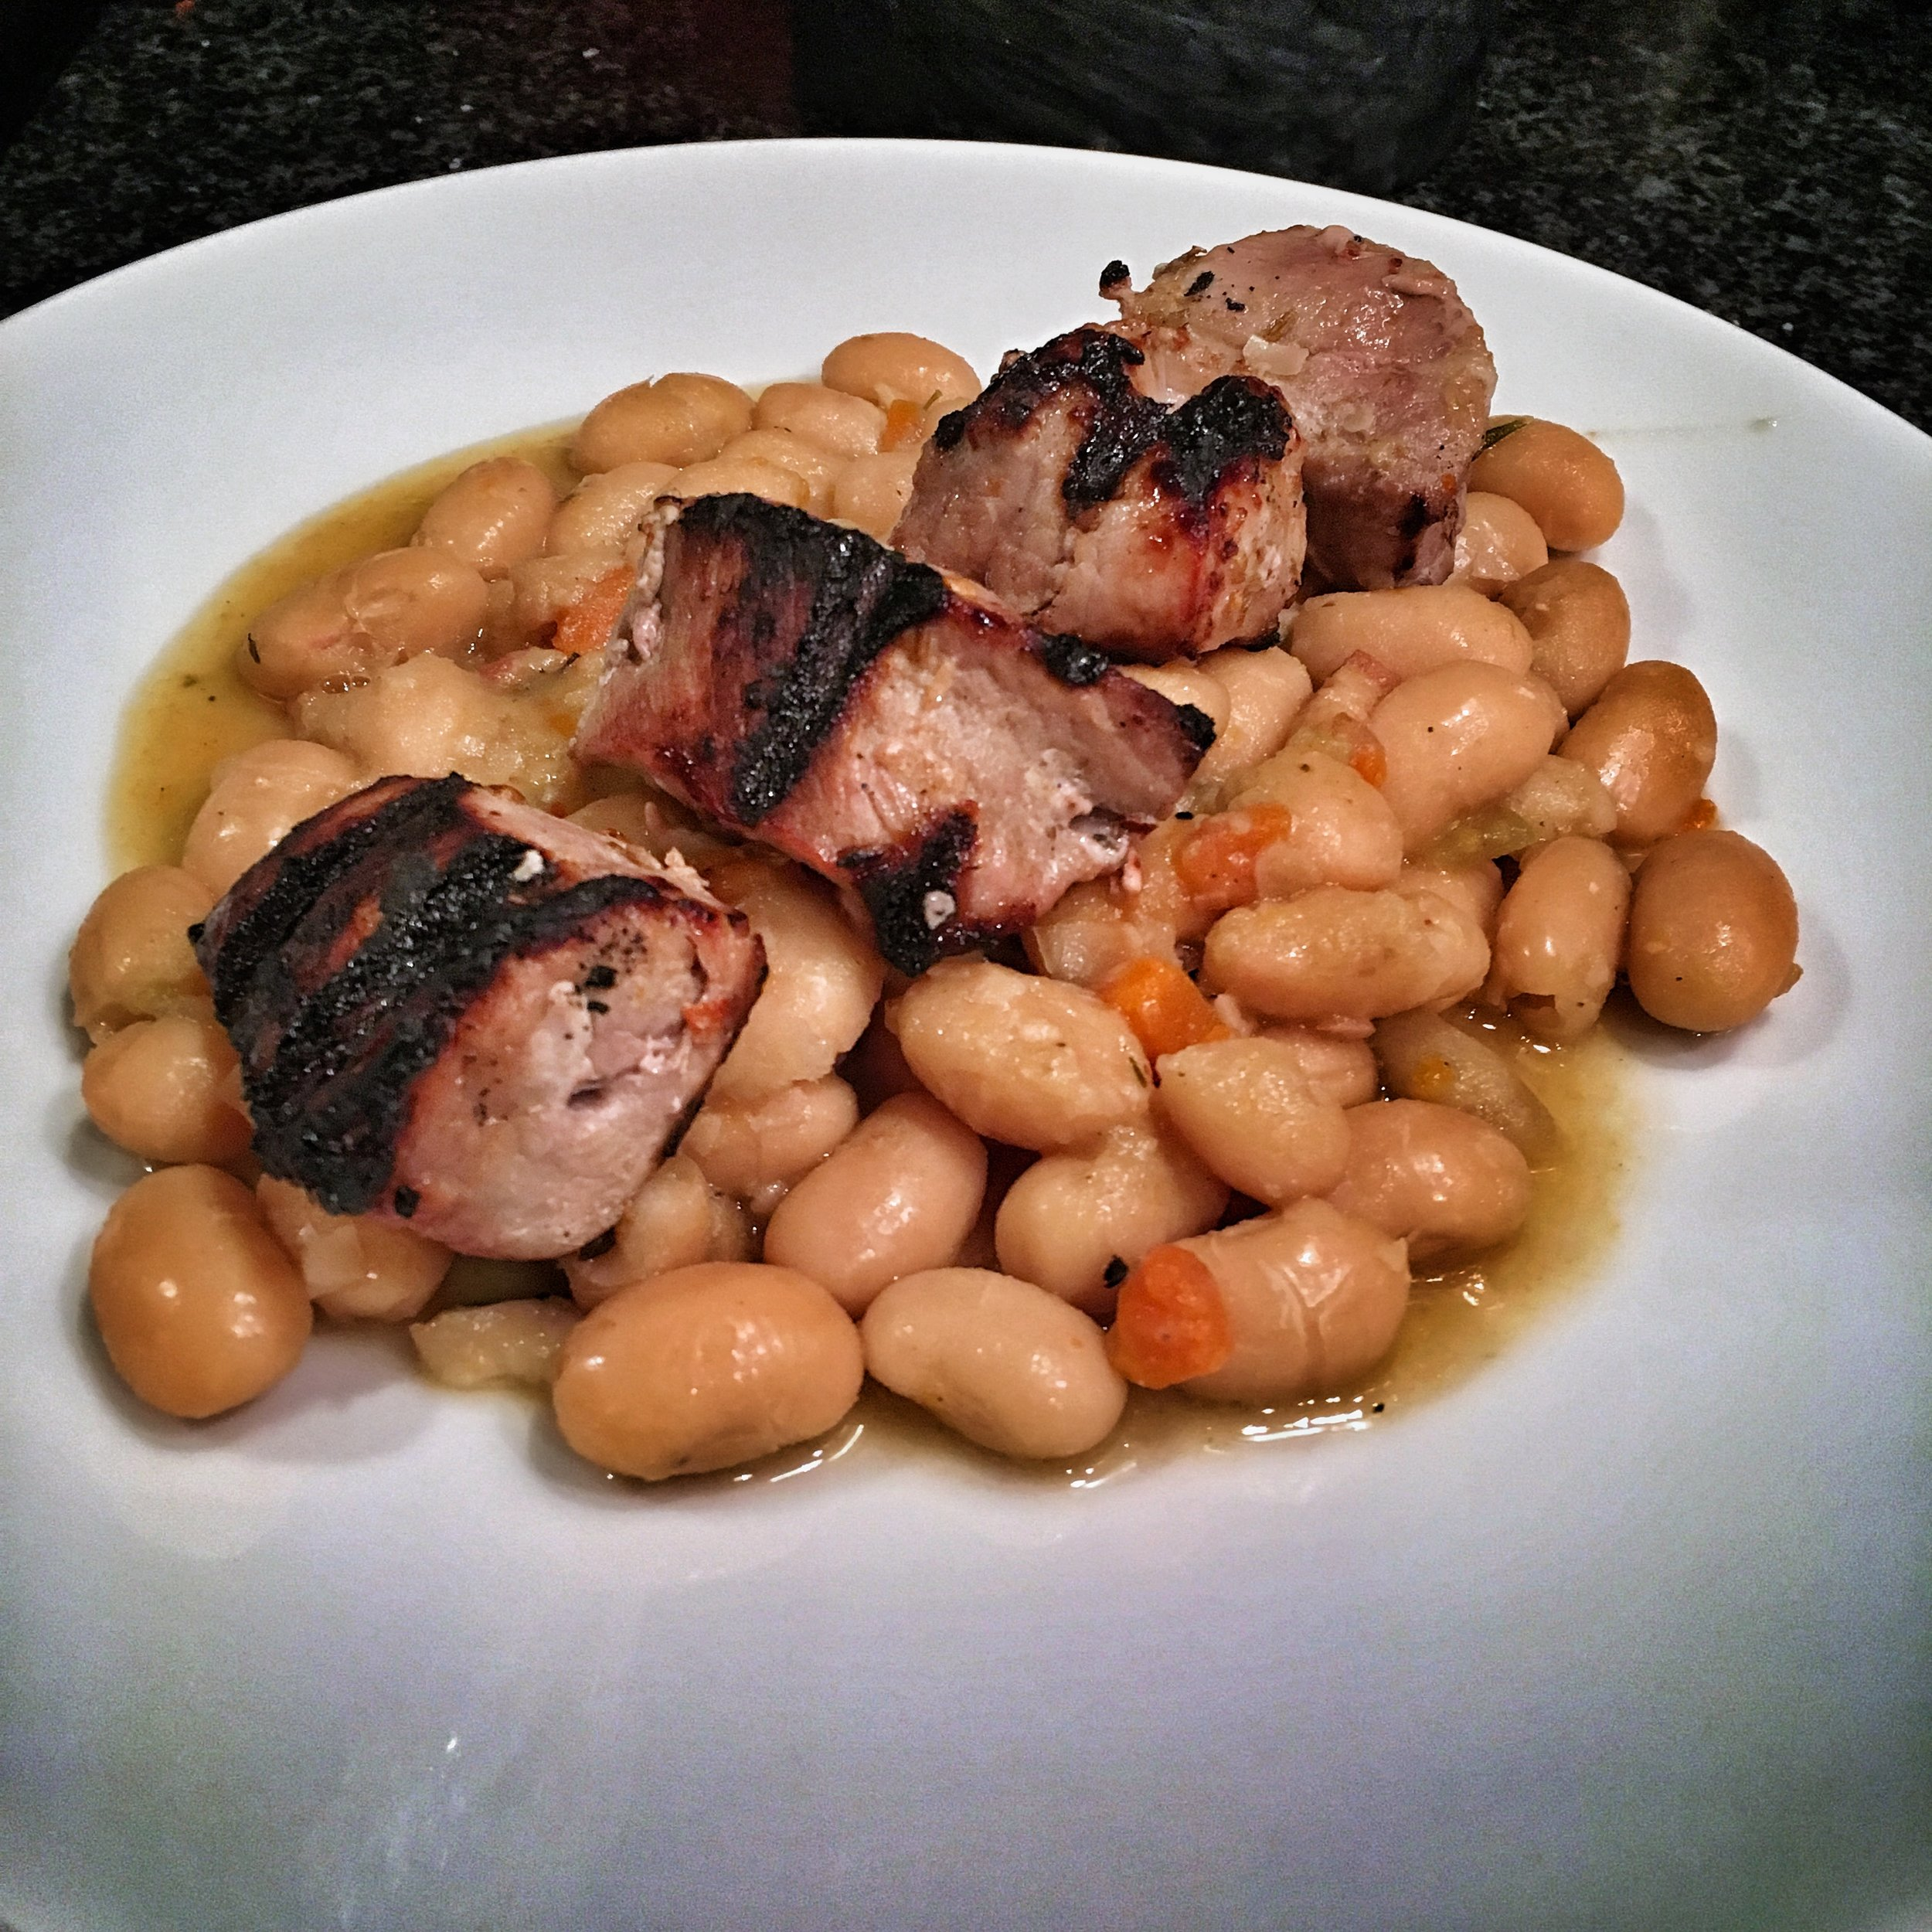 Pork tenderloin, marinated in gin and juniper, served over slowly simmered Mortgage Lifter beans.